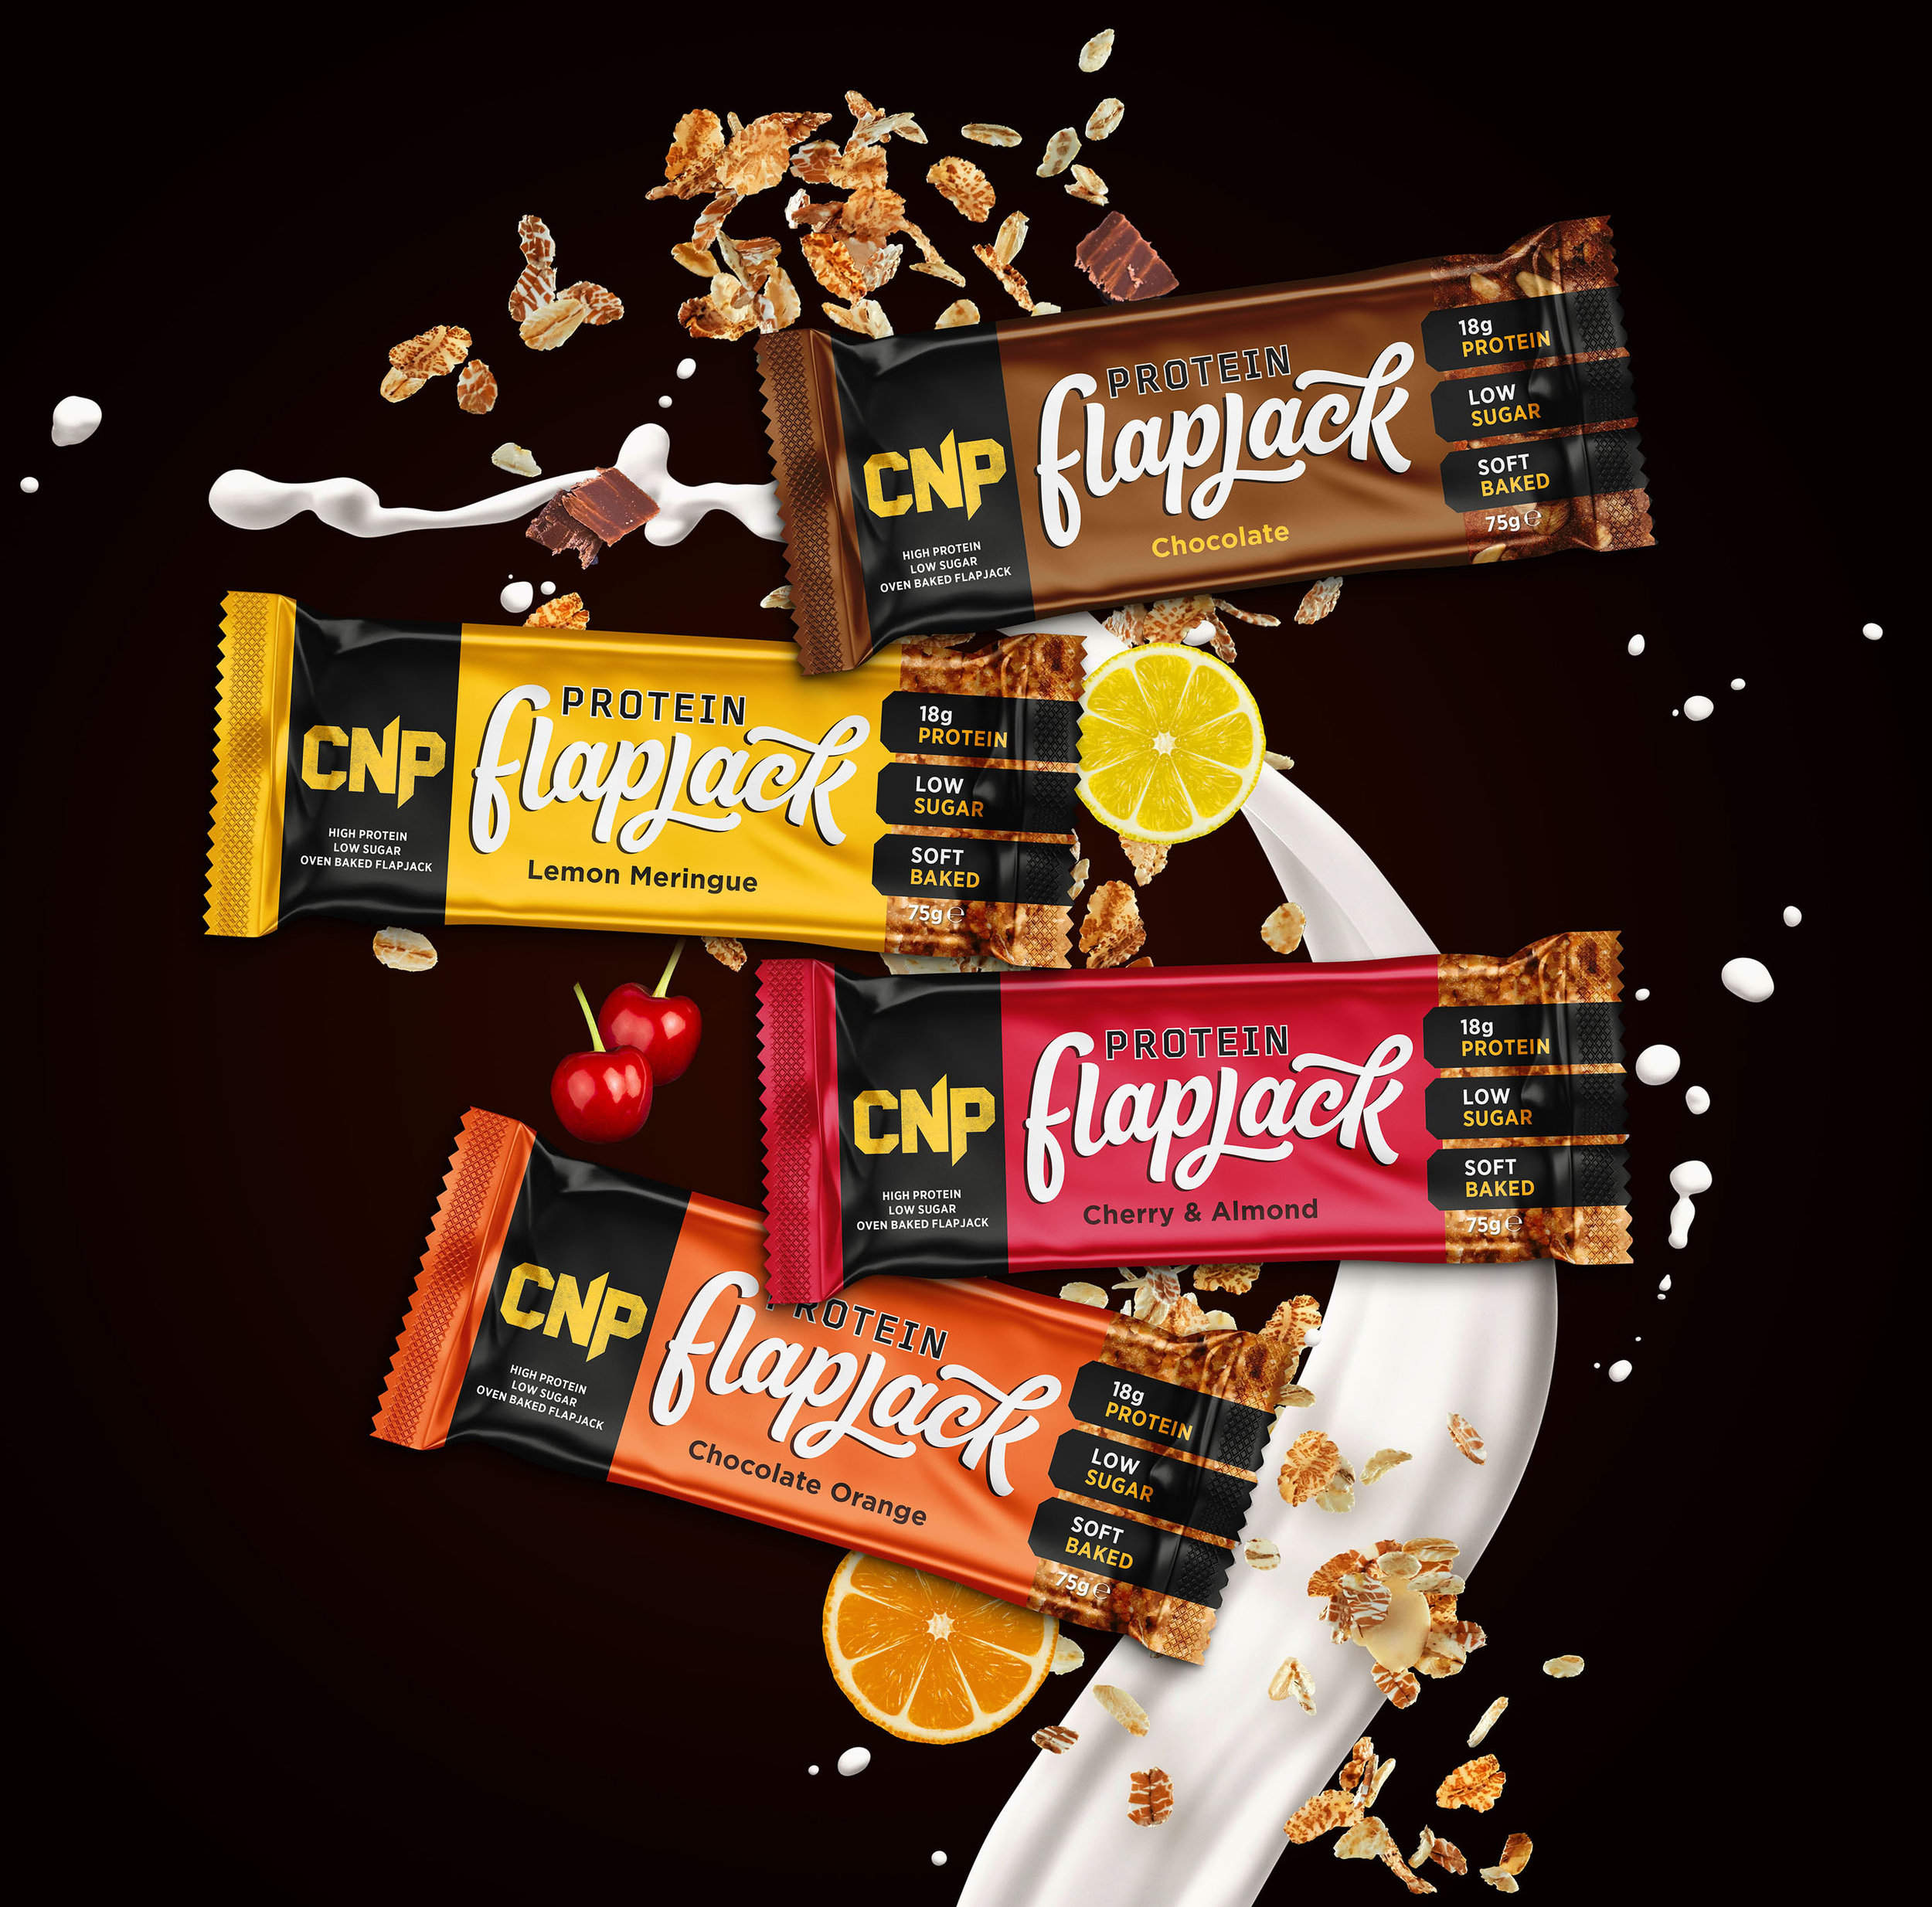 Re-Brand for the CNP protein flapjack bar in four flavours